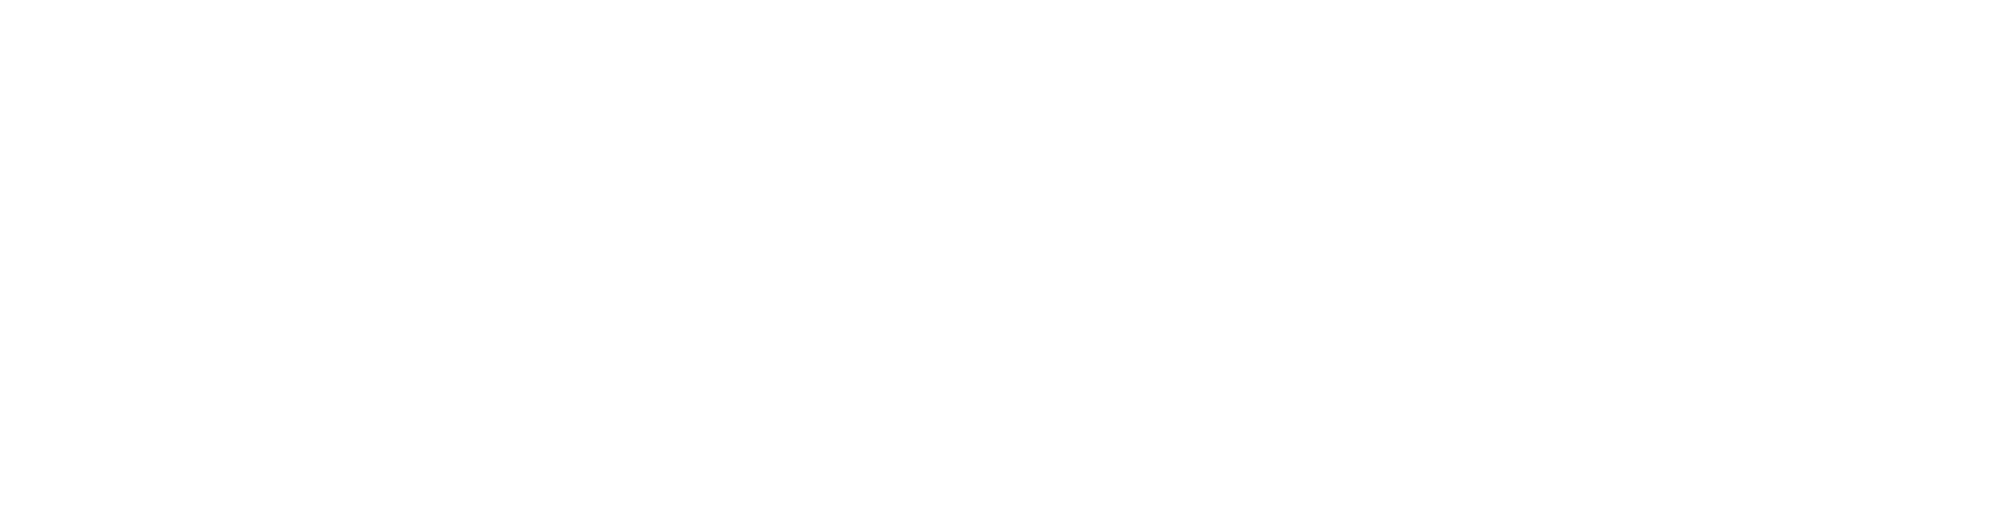 Andrew-Jeffrey-Film-logo-white-(5)-(003).png